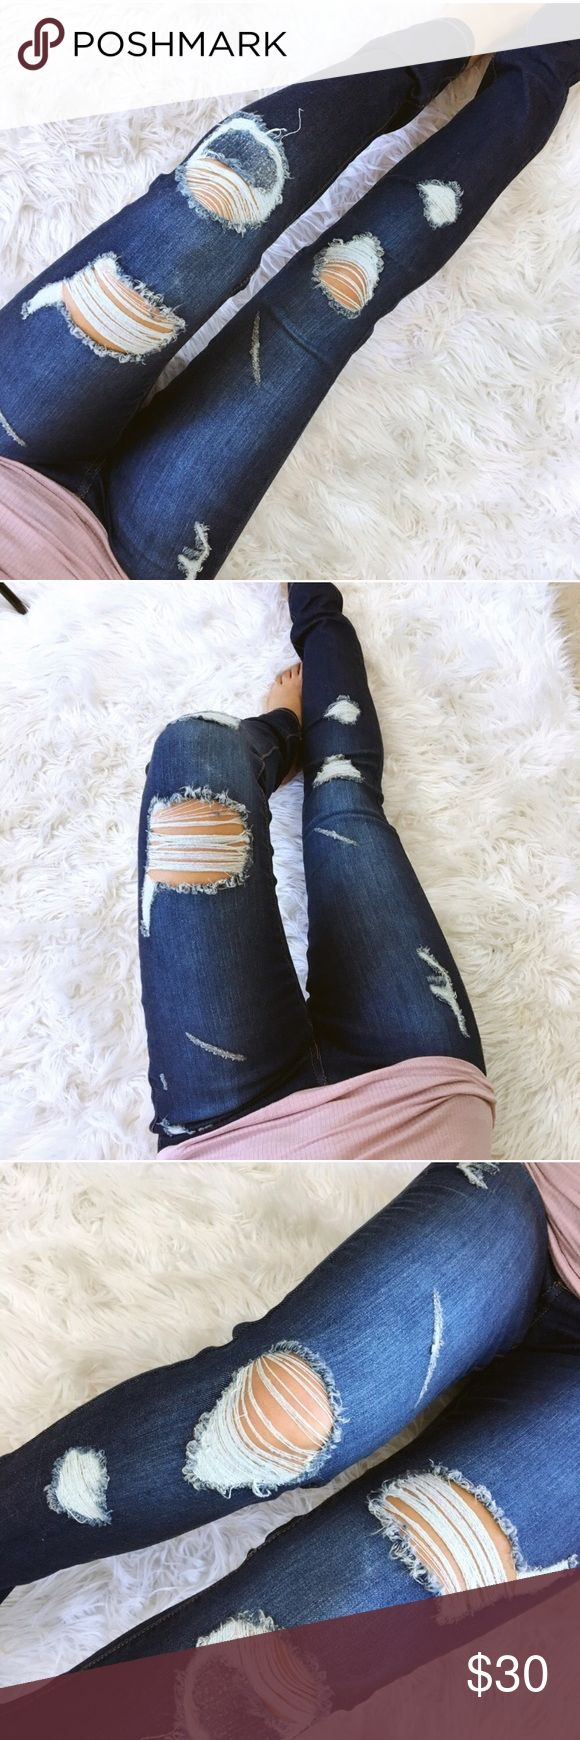 Destroyed dark skinny jeans See last photo for details. From my boutique @stephanyy Jeans Skinny